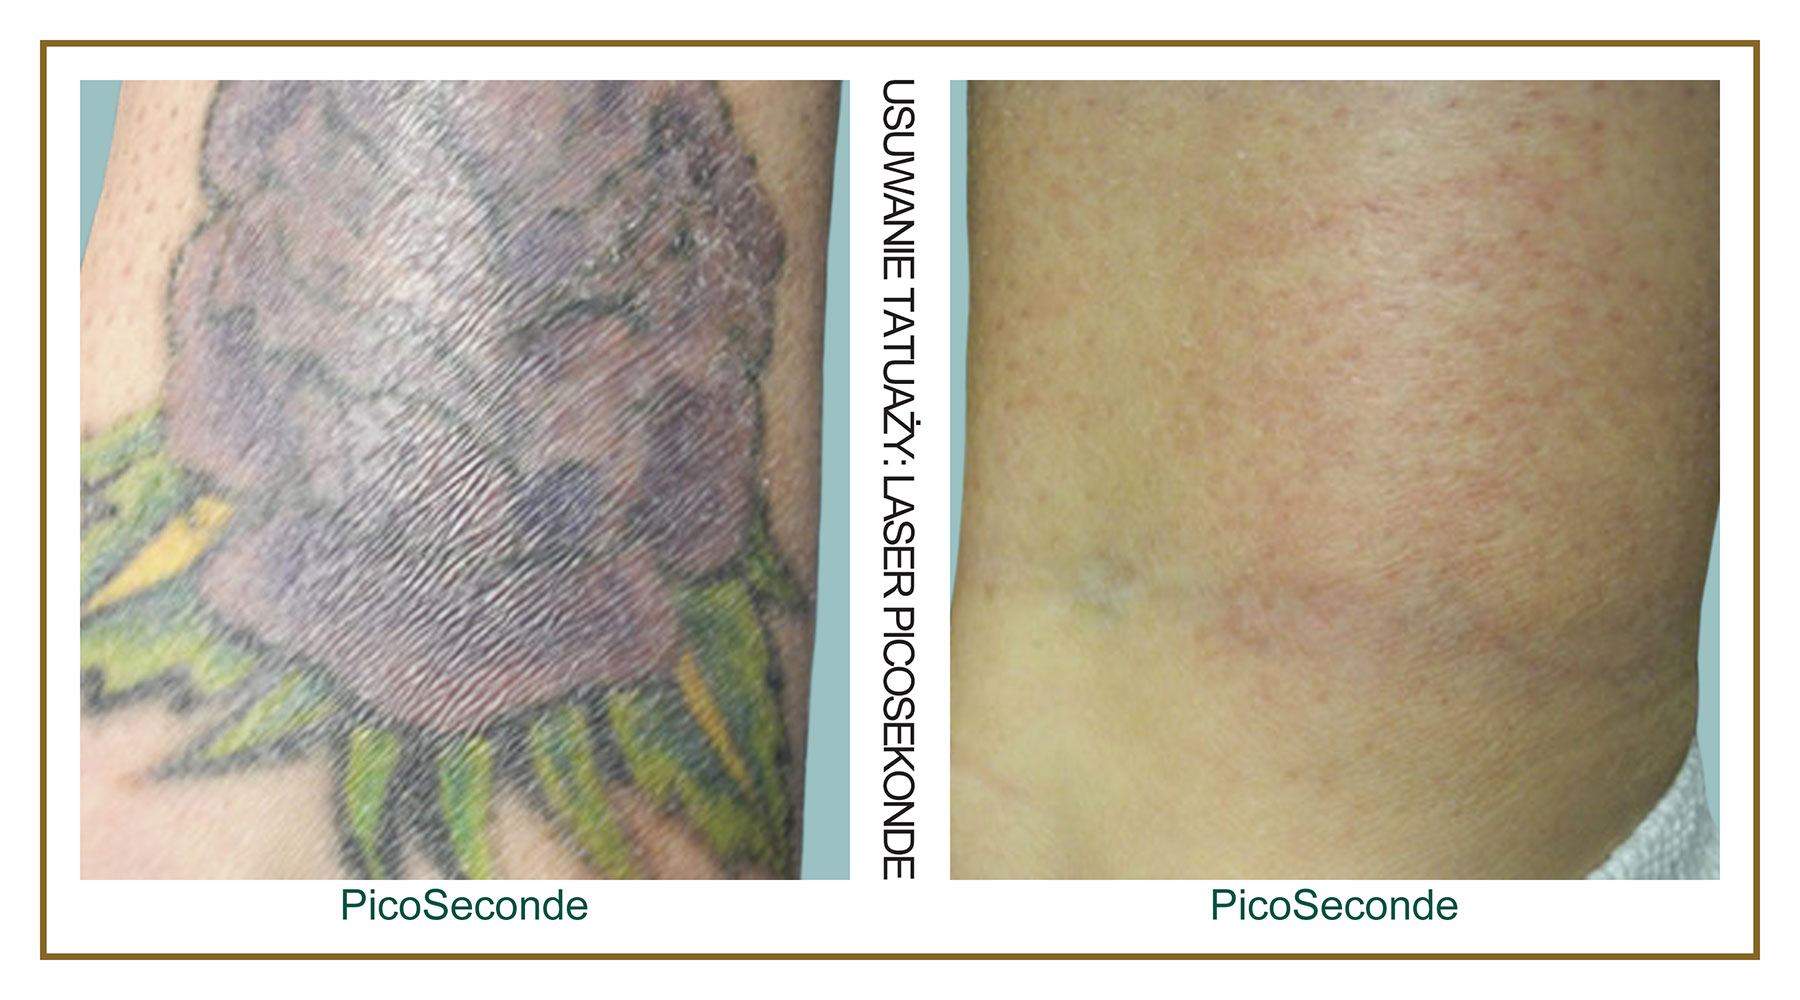 Tattoo-Removal-Laser-PicoSecond-PL-6.jpg